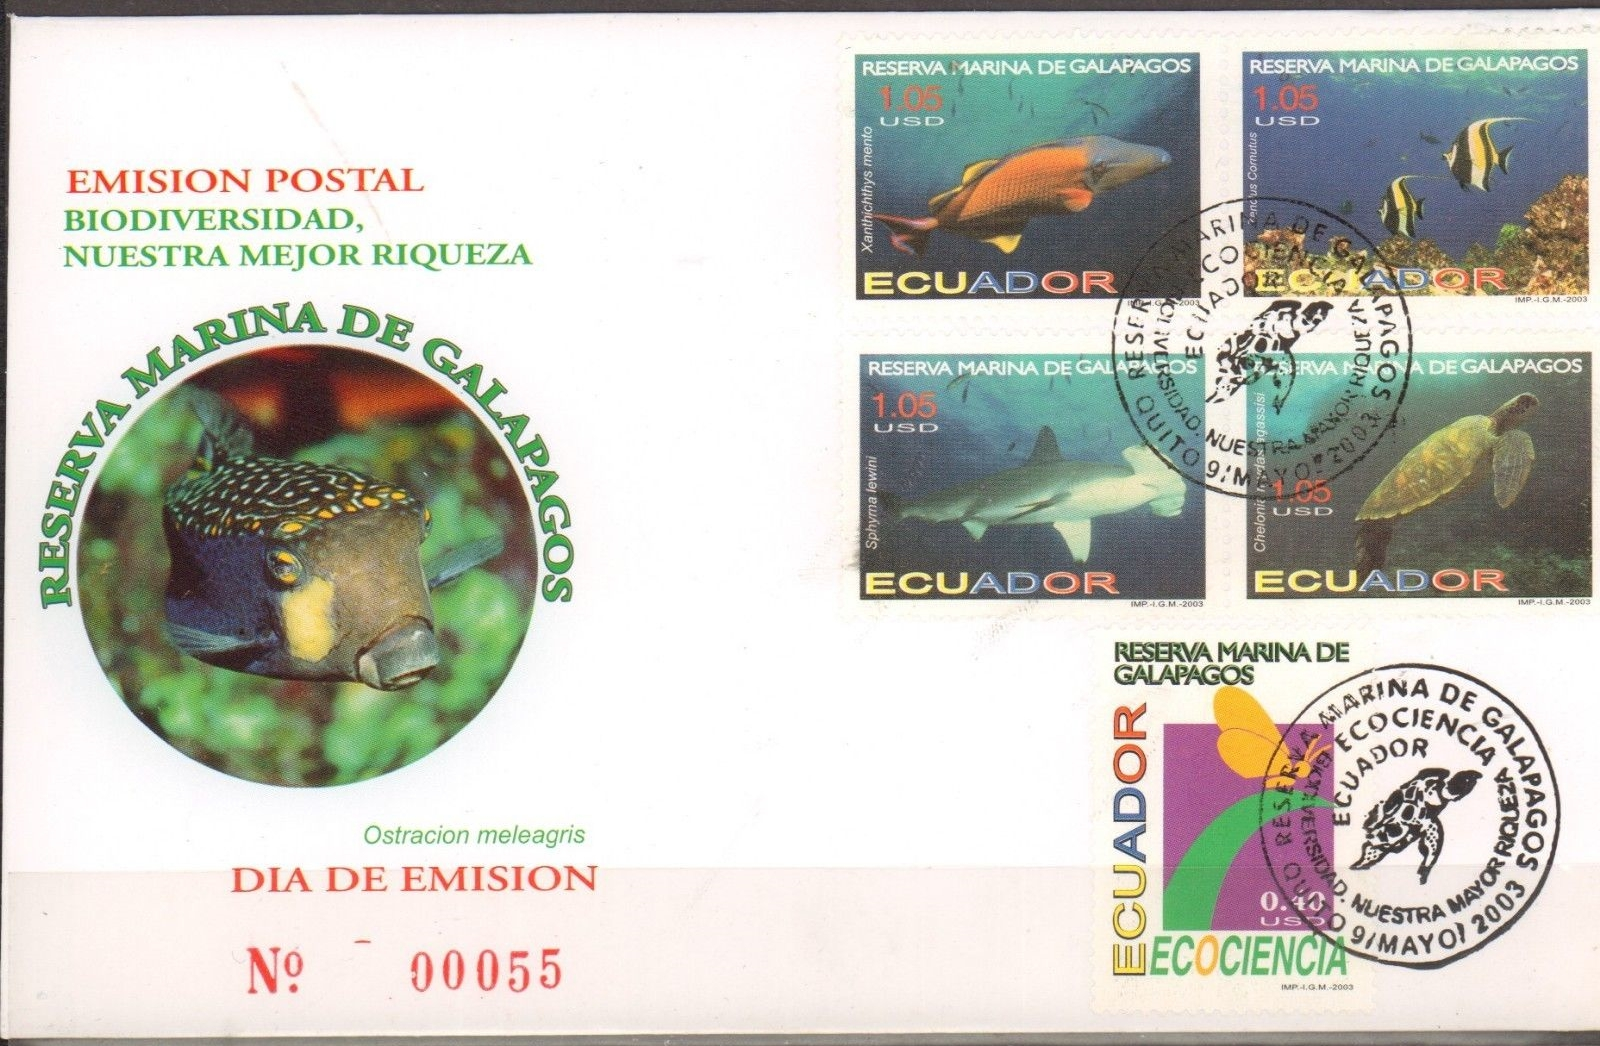 Ecuador - Scott #1670-1672 (2003) first day cover